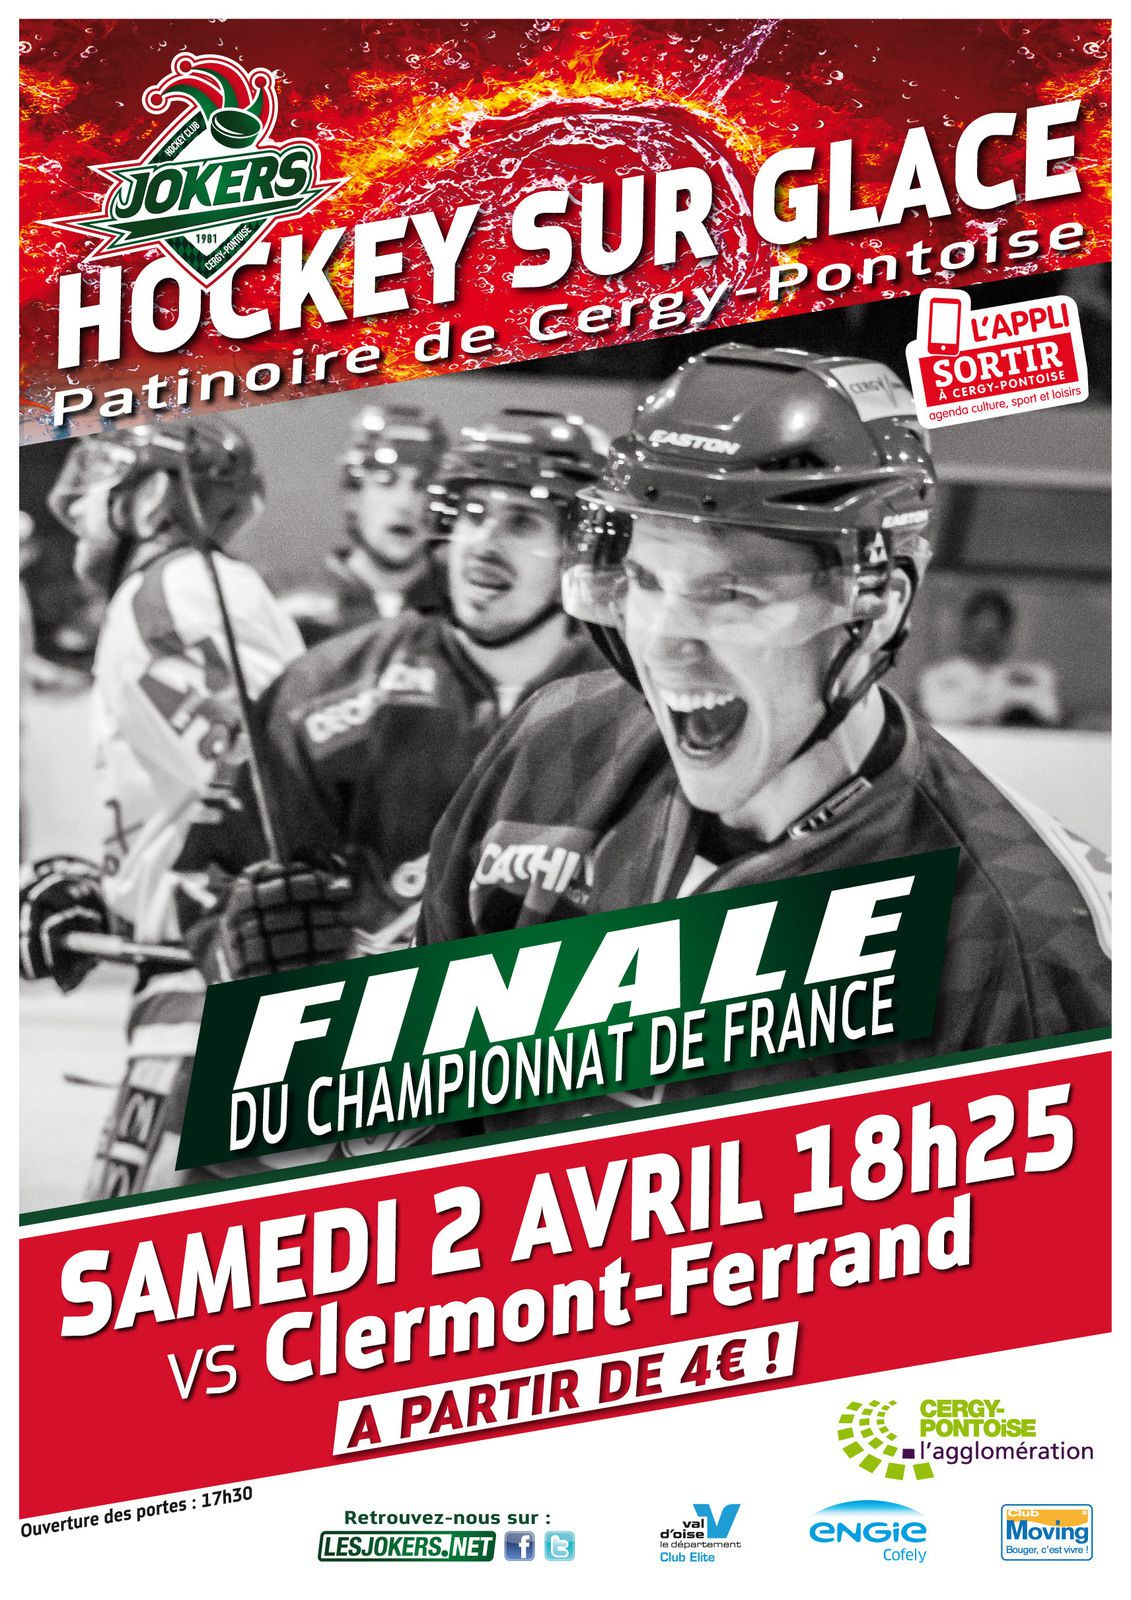 Cergy-Pontoise ou Clermont qui sera Champion de France de Hockey sur glace